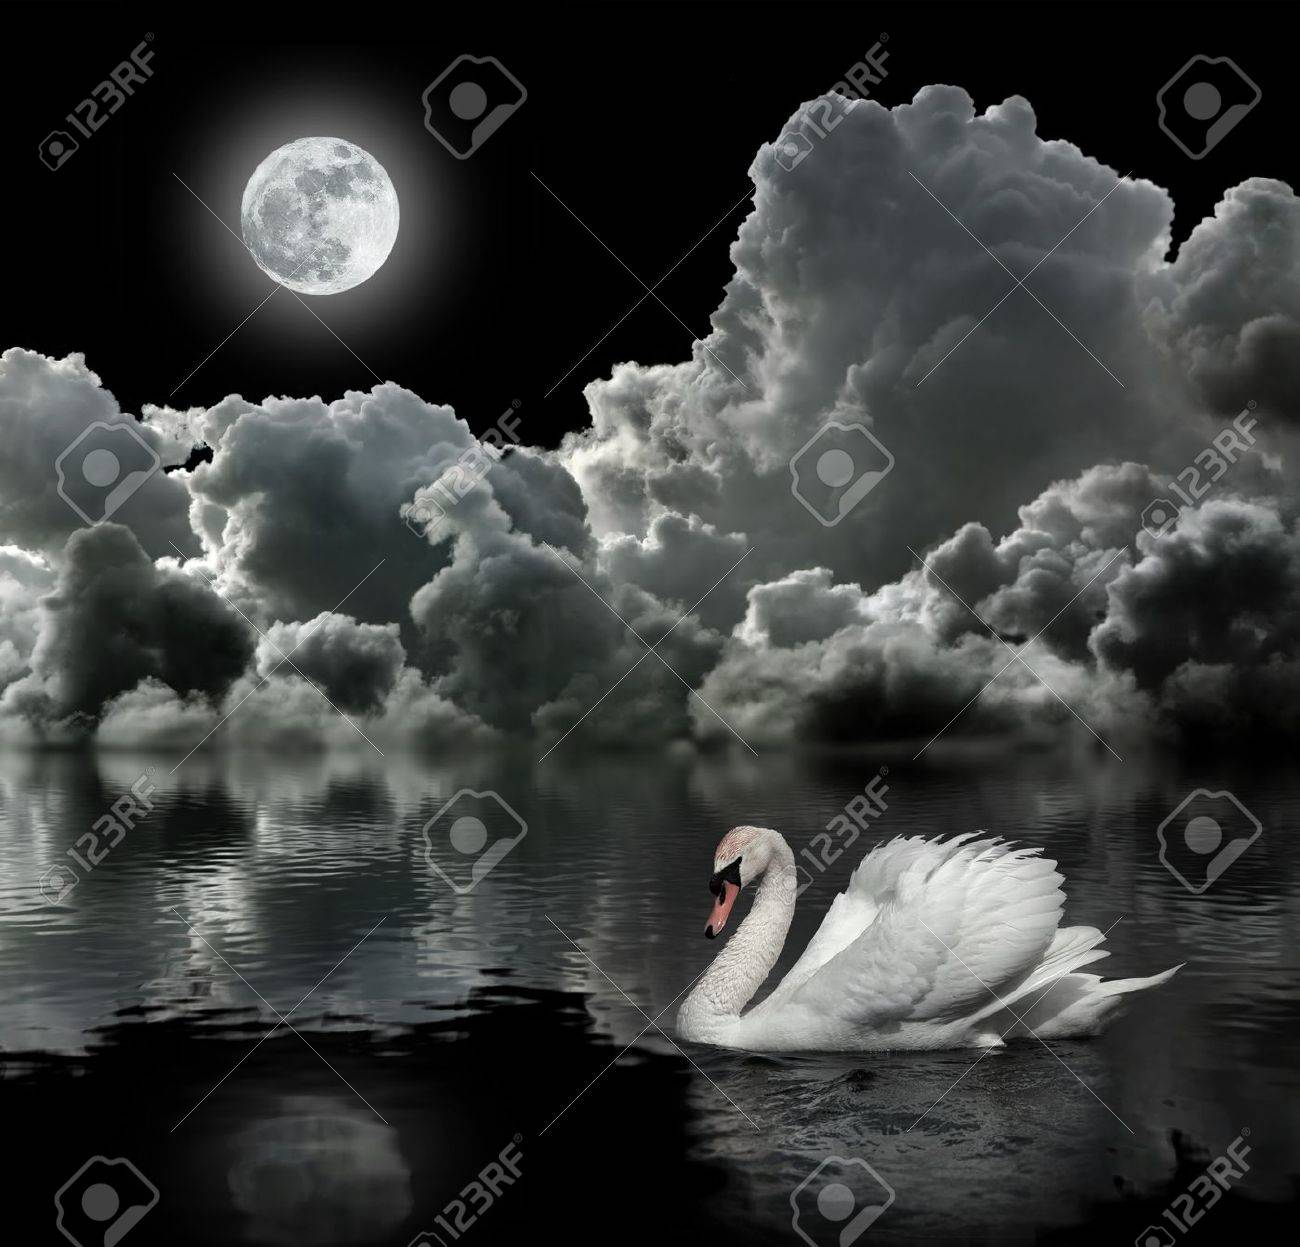 White swan at night under the moon Stock Photo - 13626608